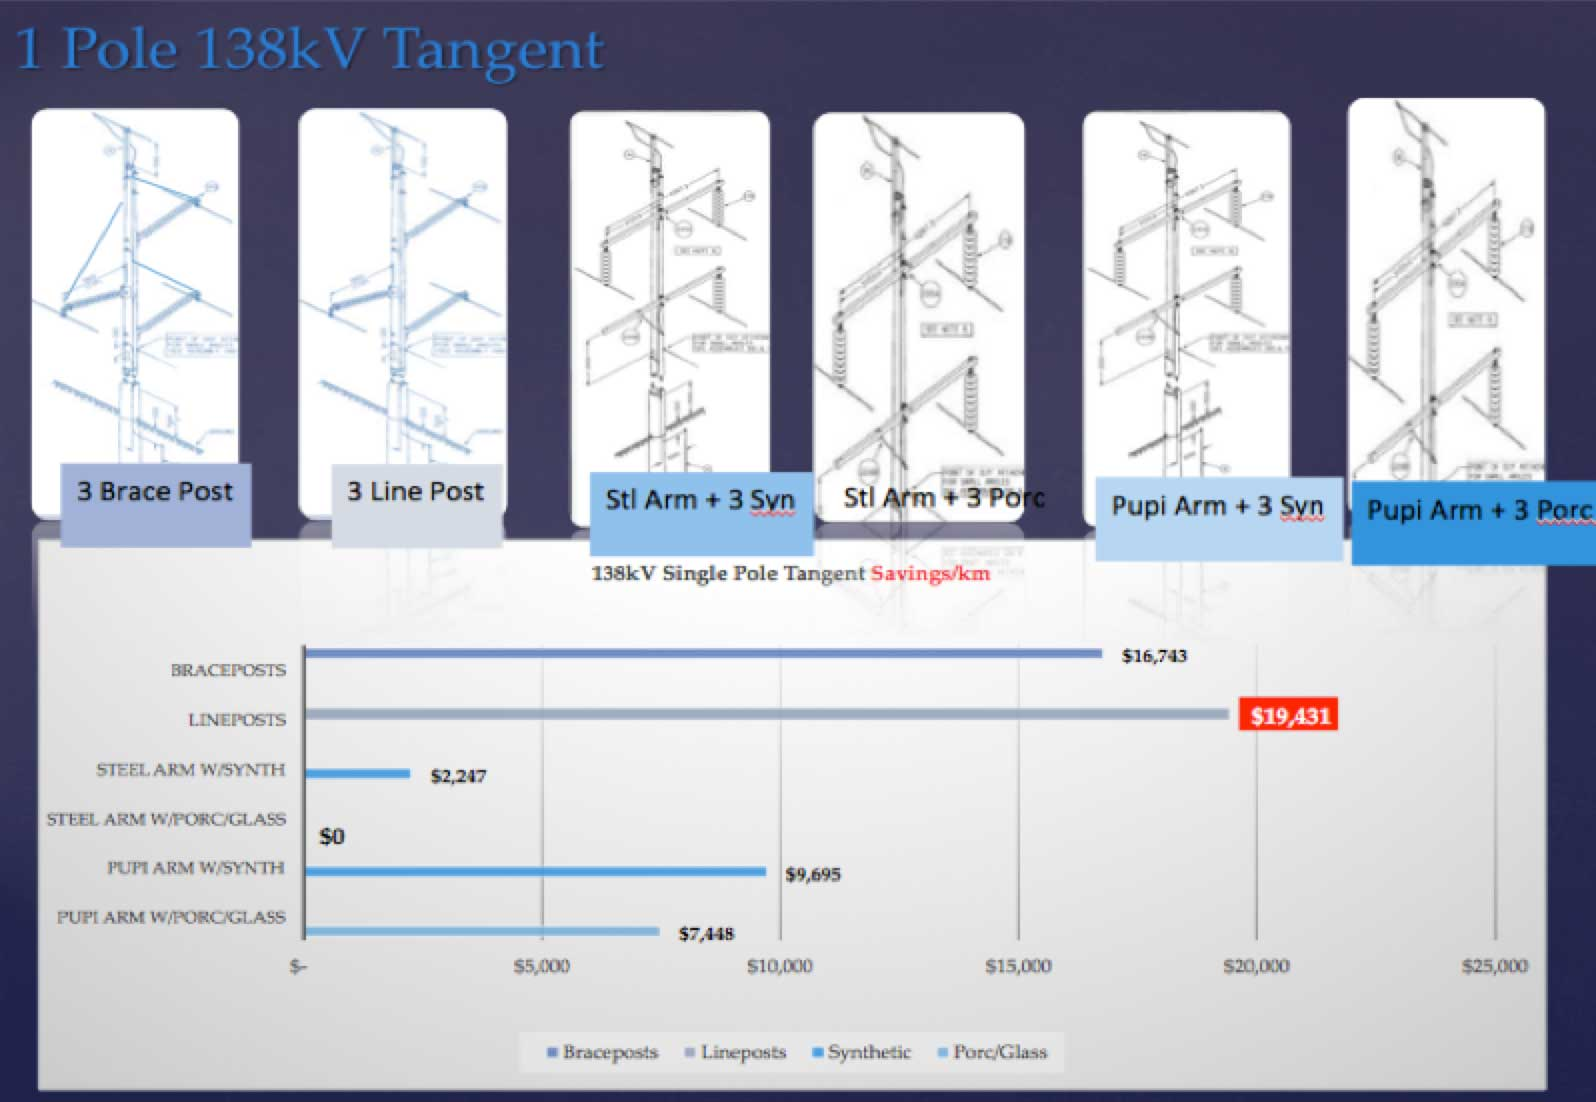 Implementing Compact Transmission Lines: Experience at Canadian Utility Single pole 138 kV tangent